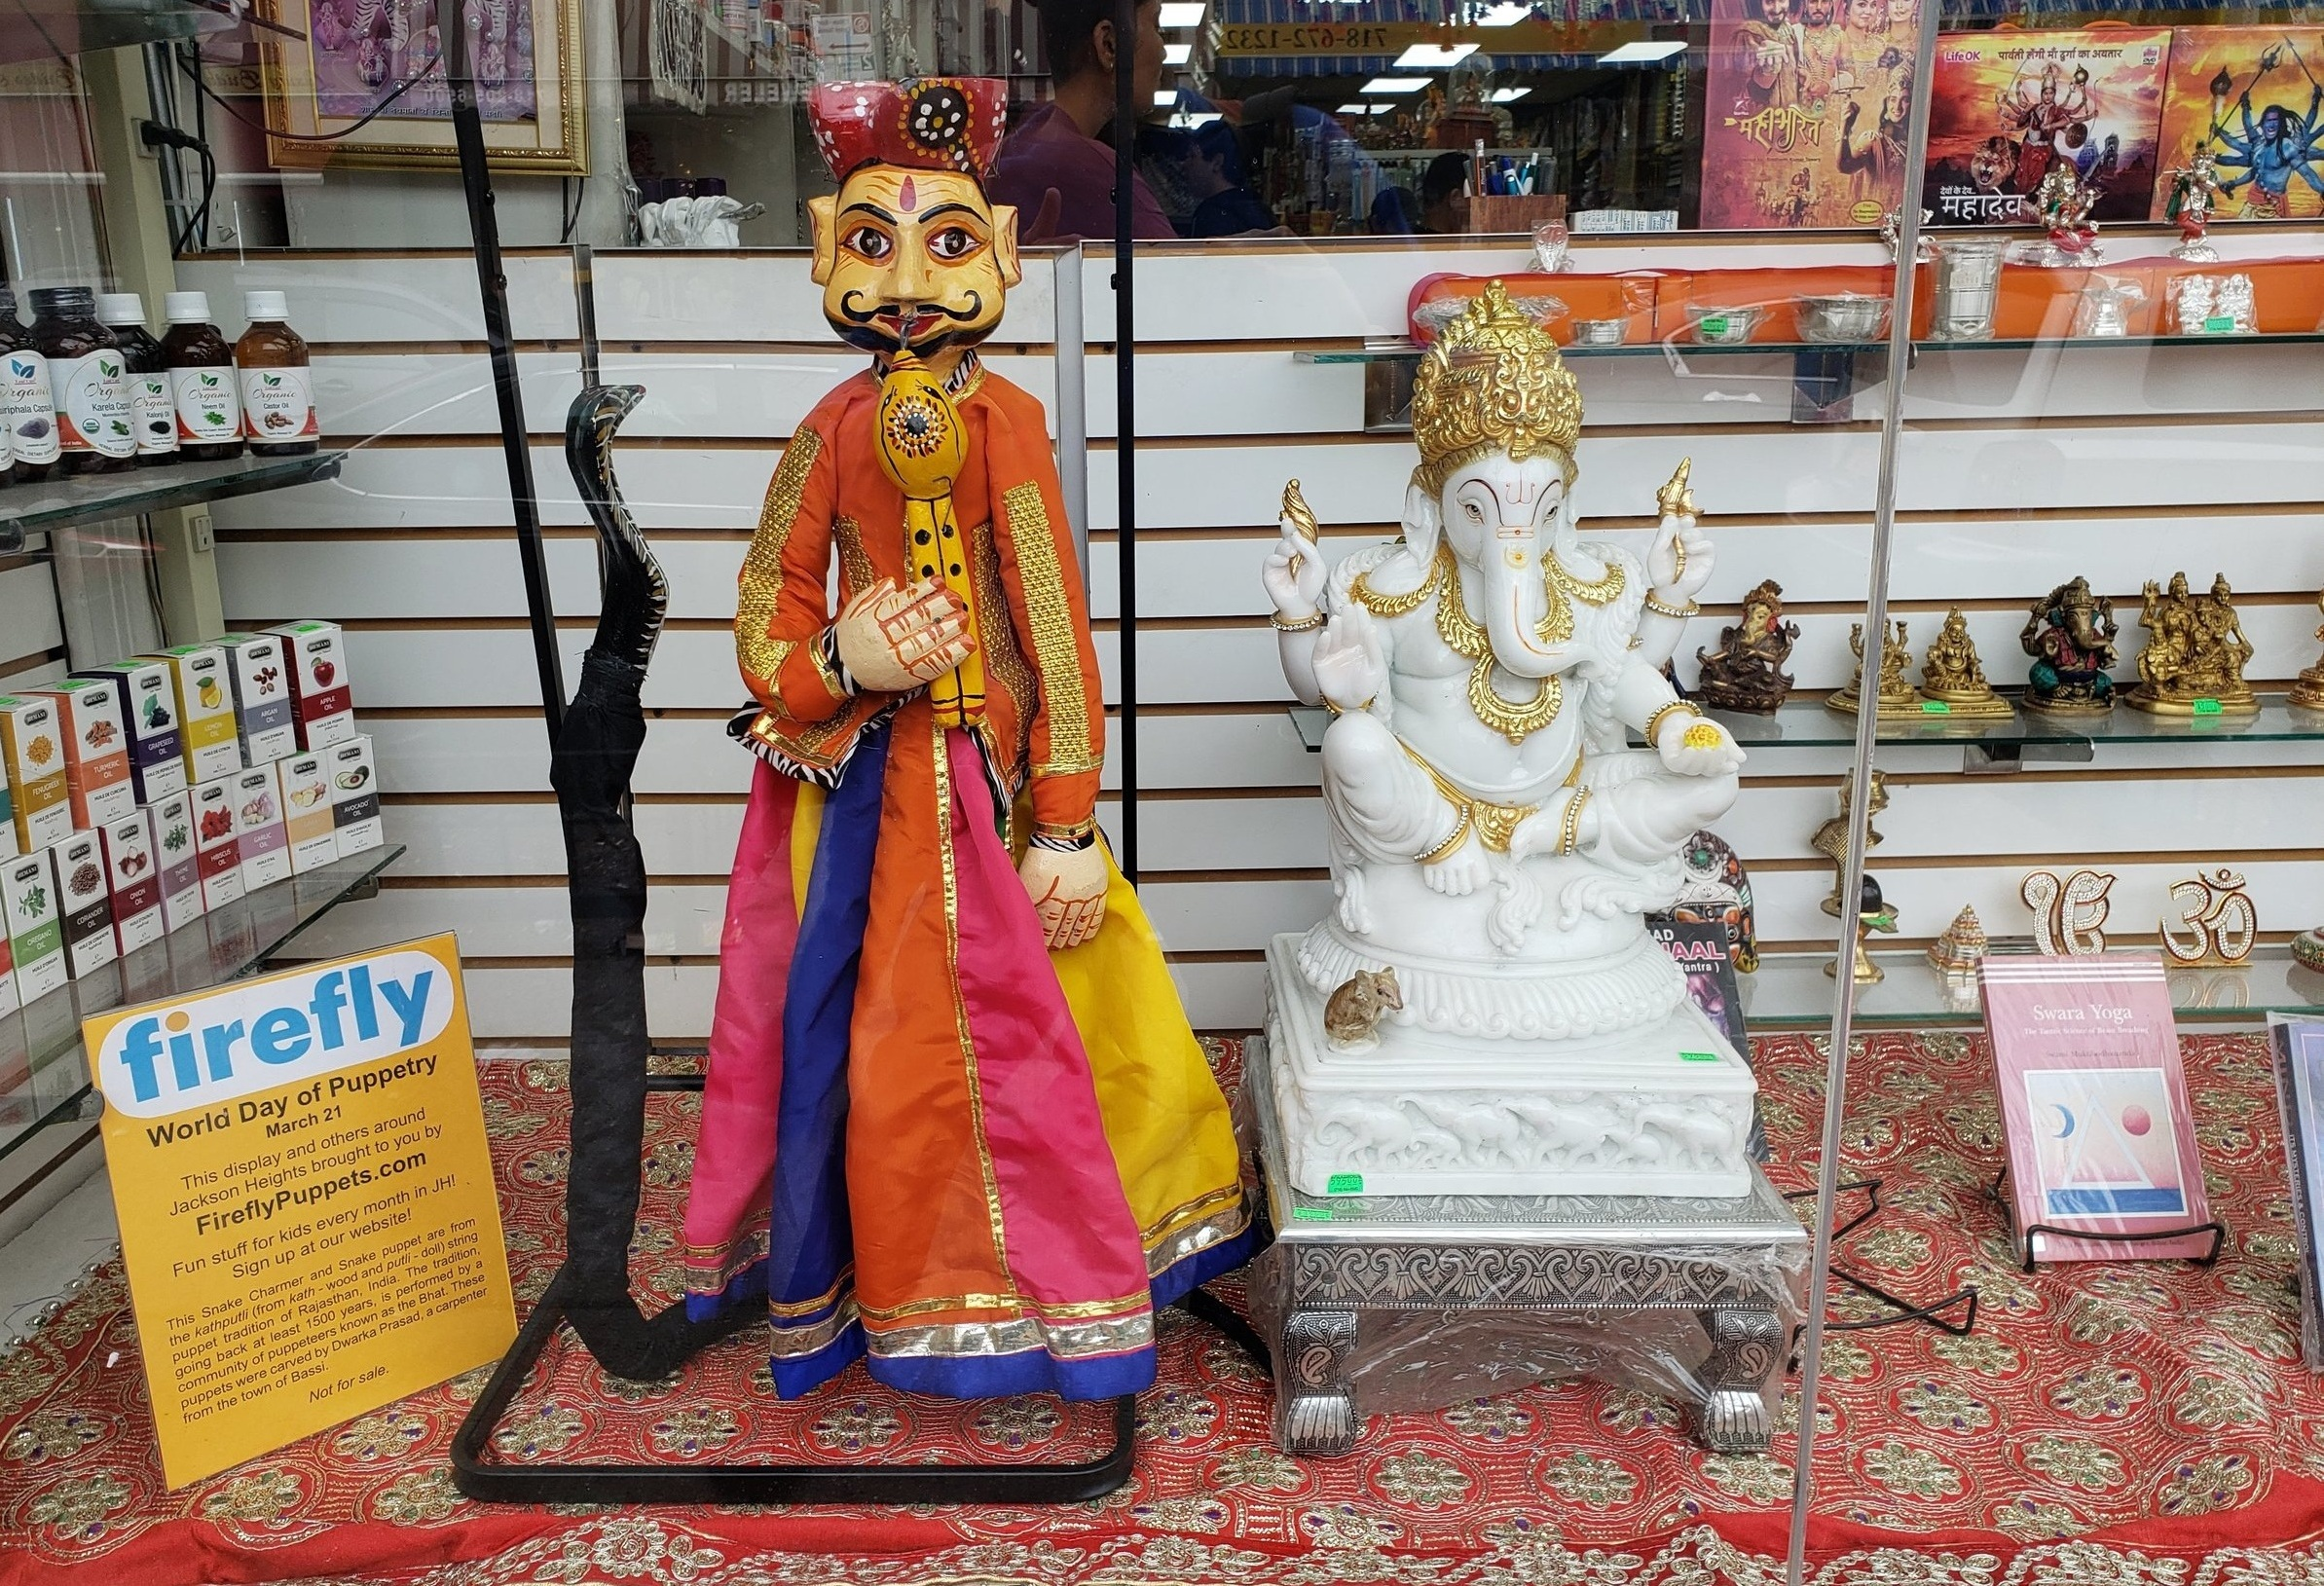 Firefly worked with stores around Jackson Heights to display puppets from 5 continents March 16-24, which included World Day of Puppetry on March 21st!